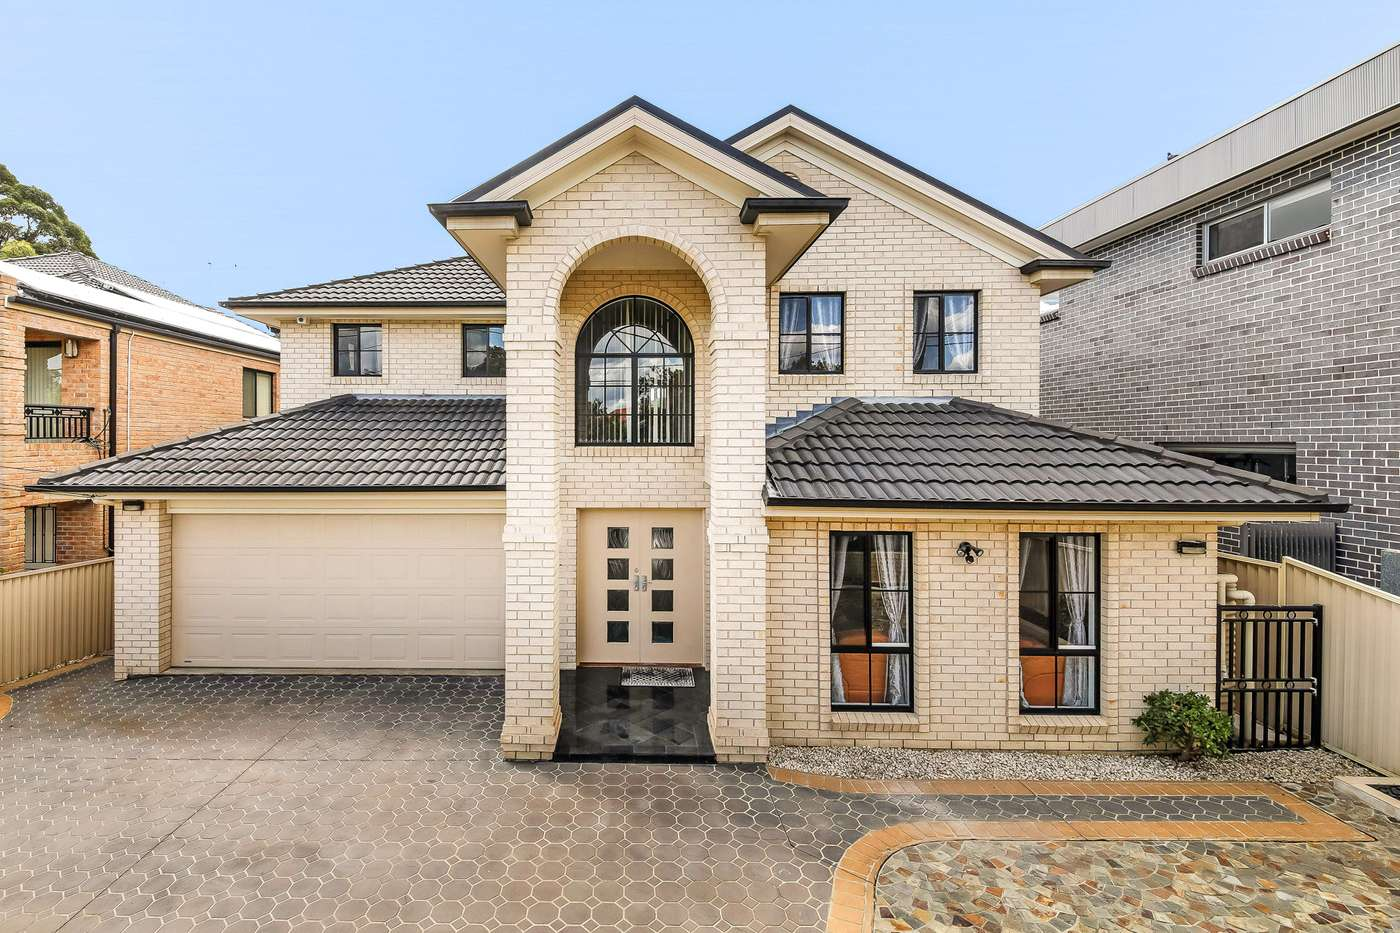 Main view of Homely house listing, 24 Buist Street, Yagoona, NSW 2199